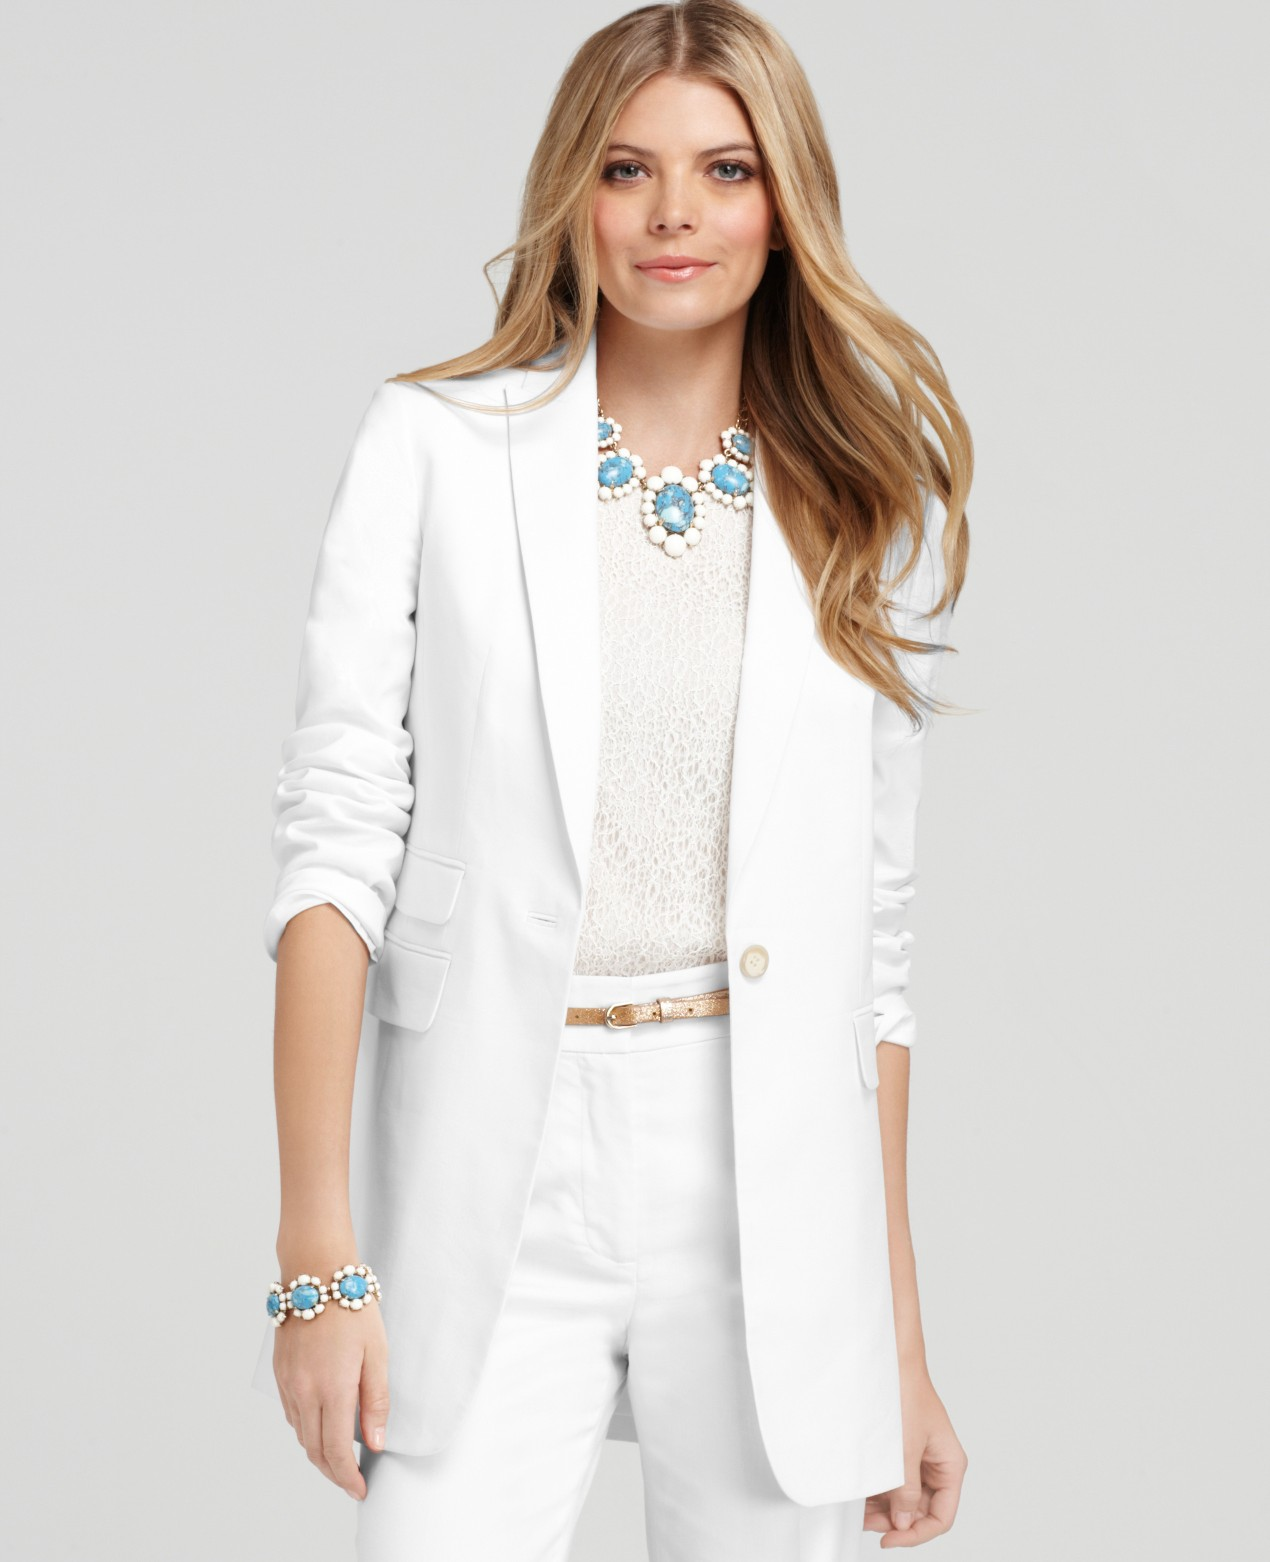 Ann taylor Petite Stretch Linen Twill Long Jacket in White | Lyst